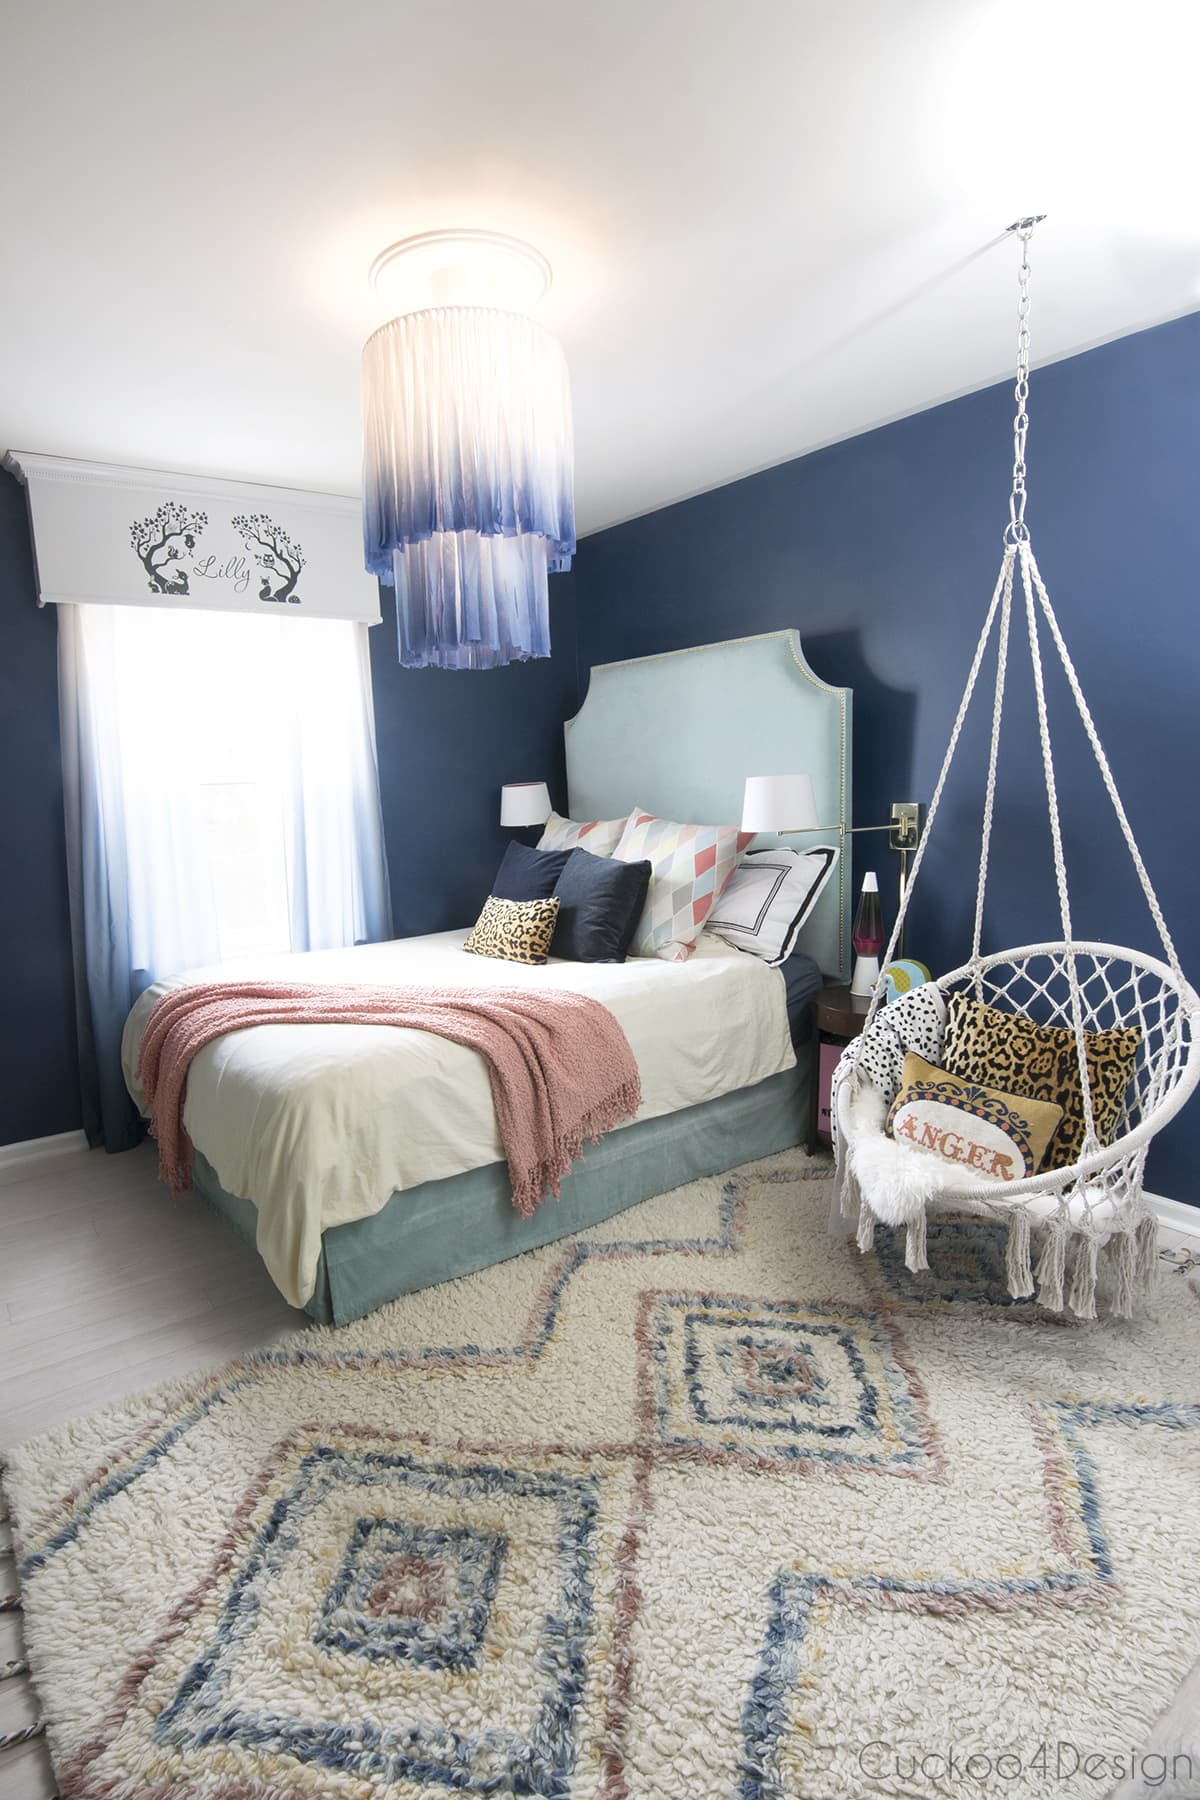 lit white and blue chandelier in bedroom